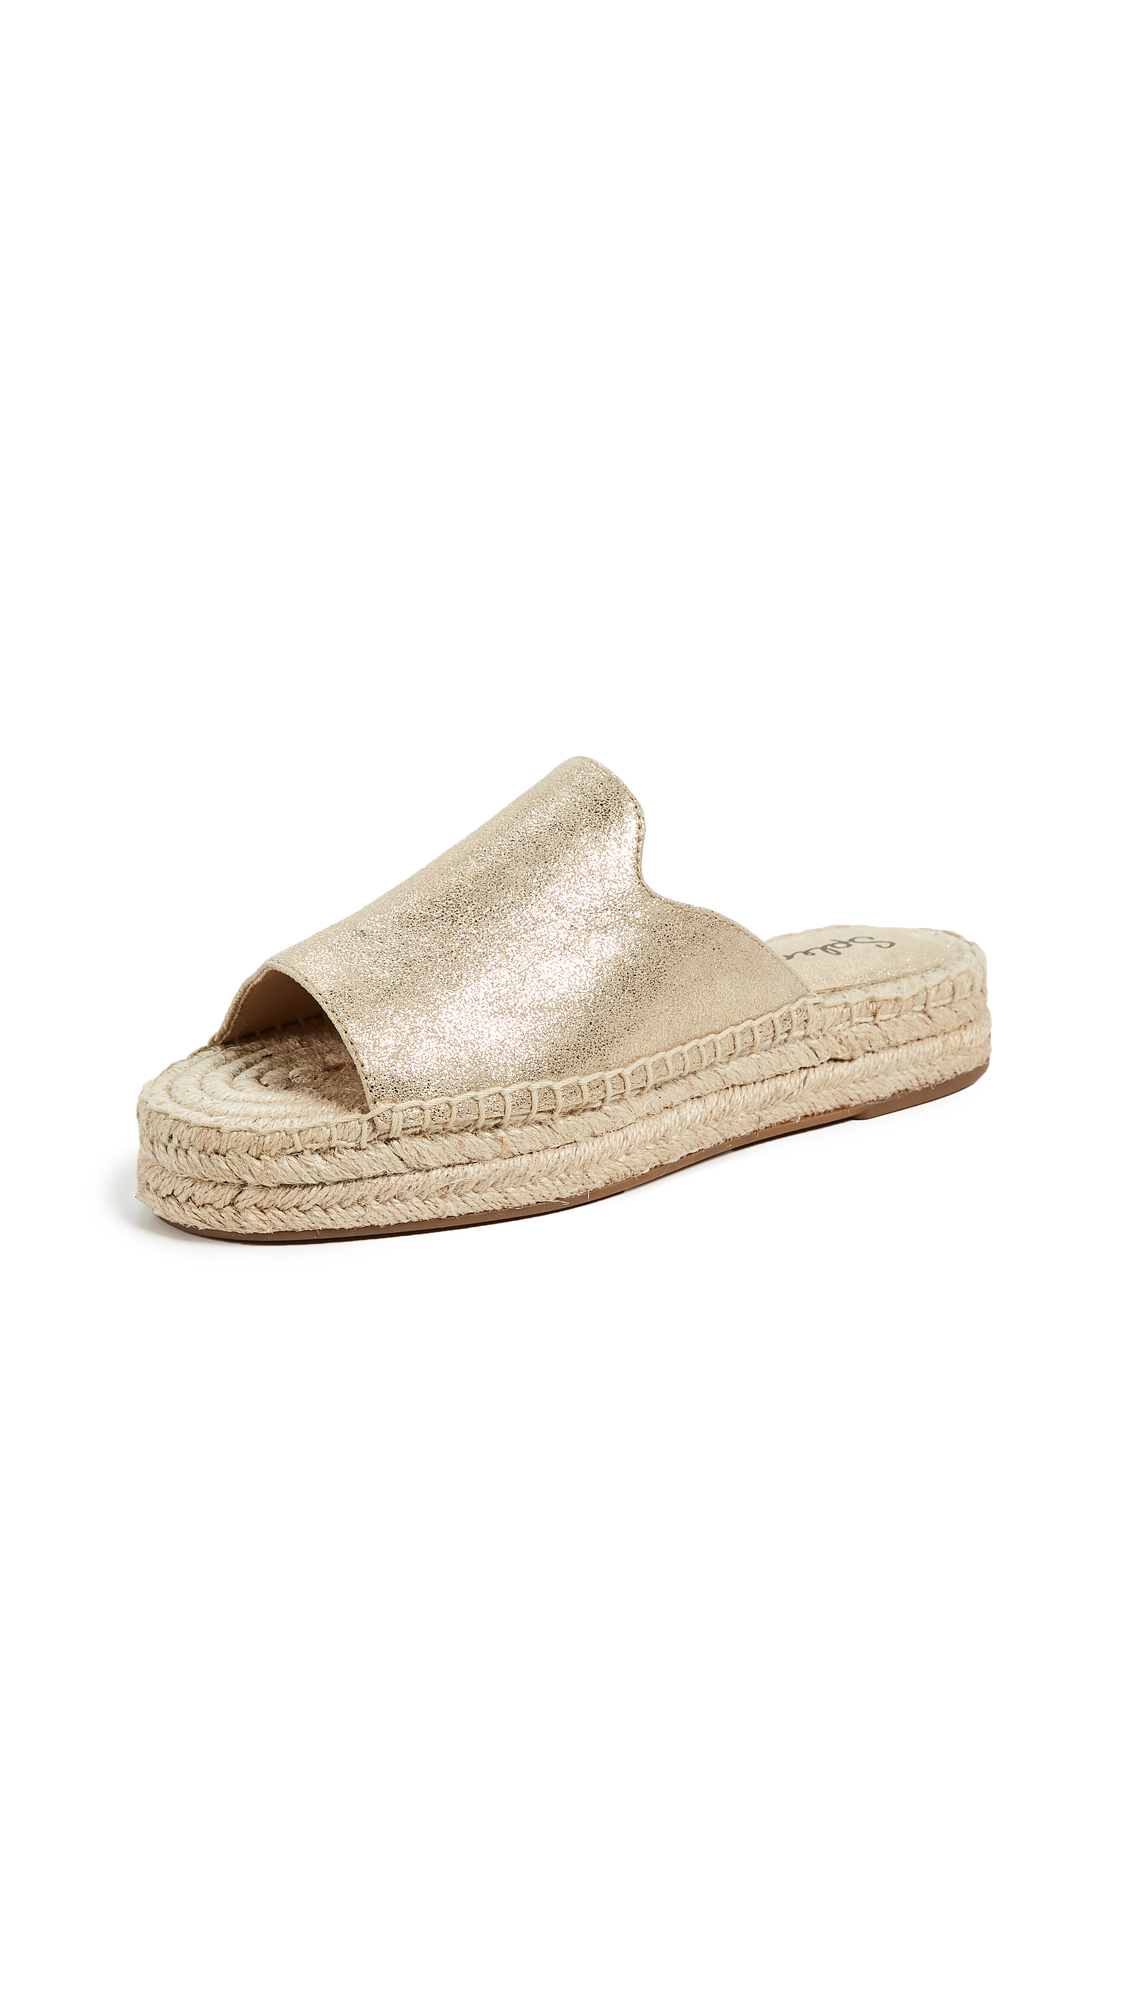 Splendid Franci Espadrille Slides - Light Gold